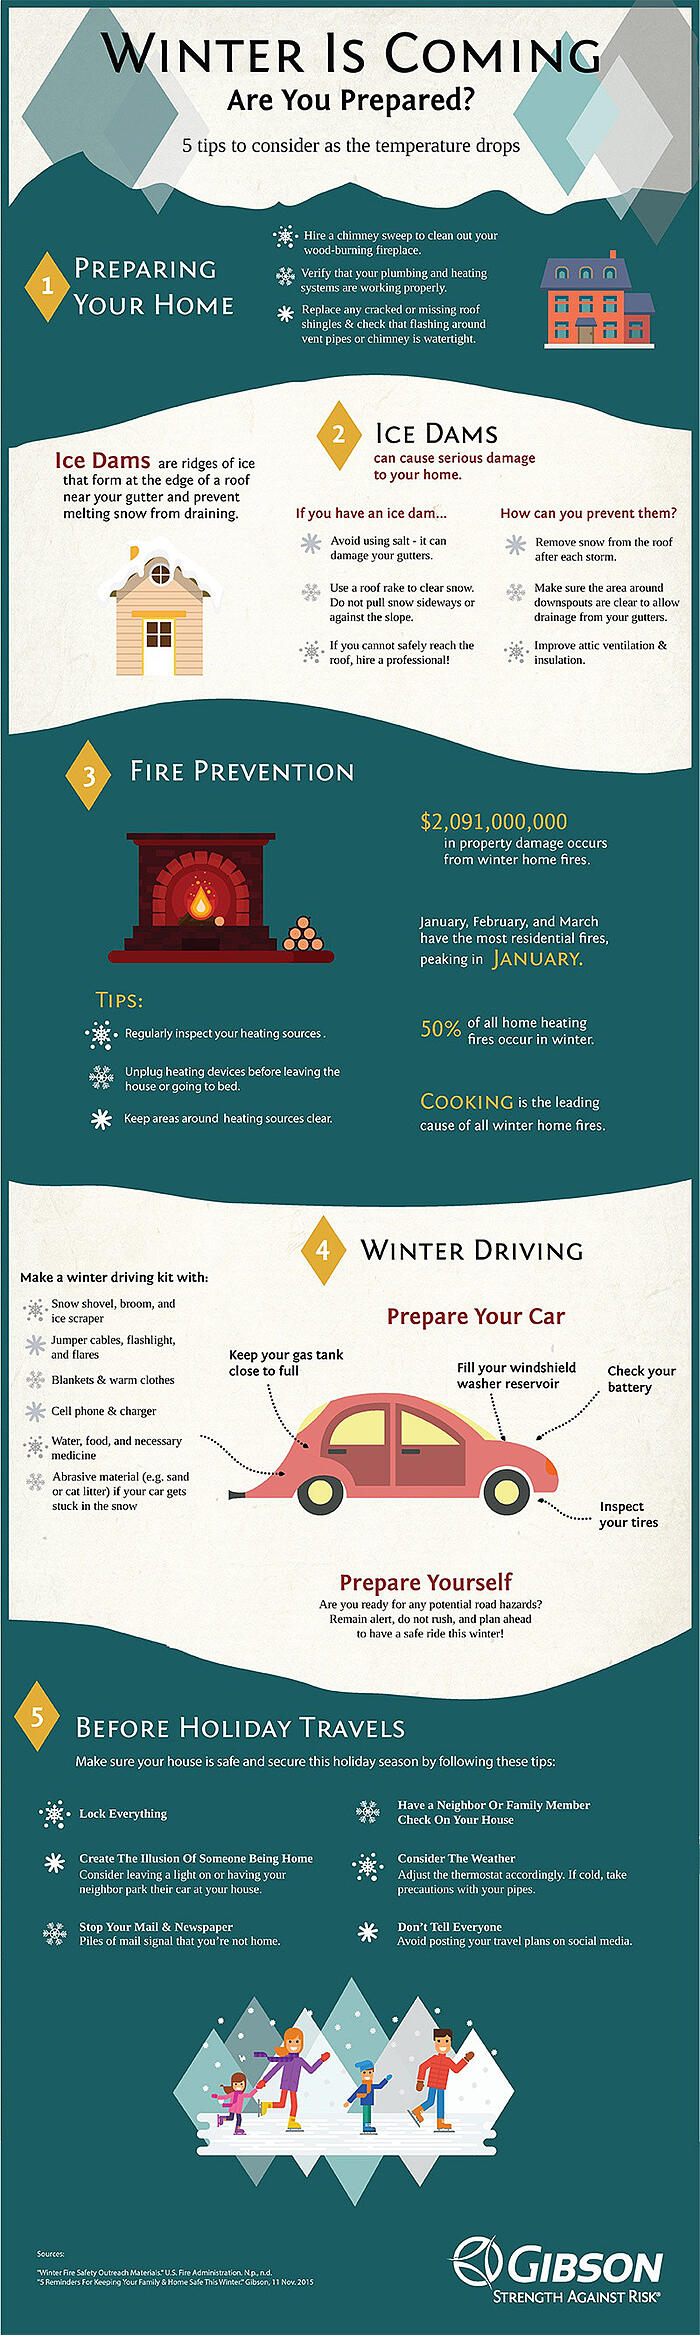 Winter_Is_Coming_-_Infographic_-_small-1.jpg